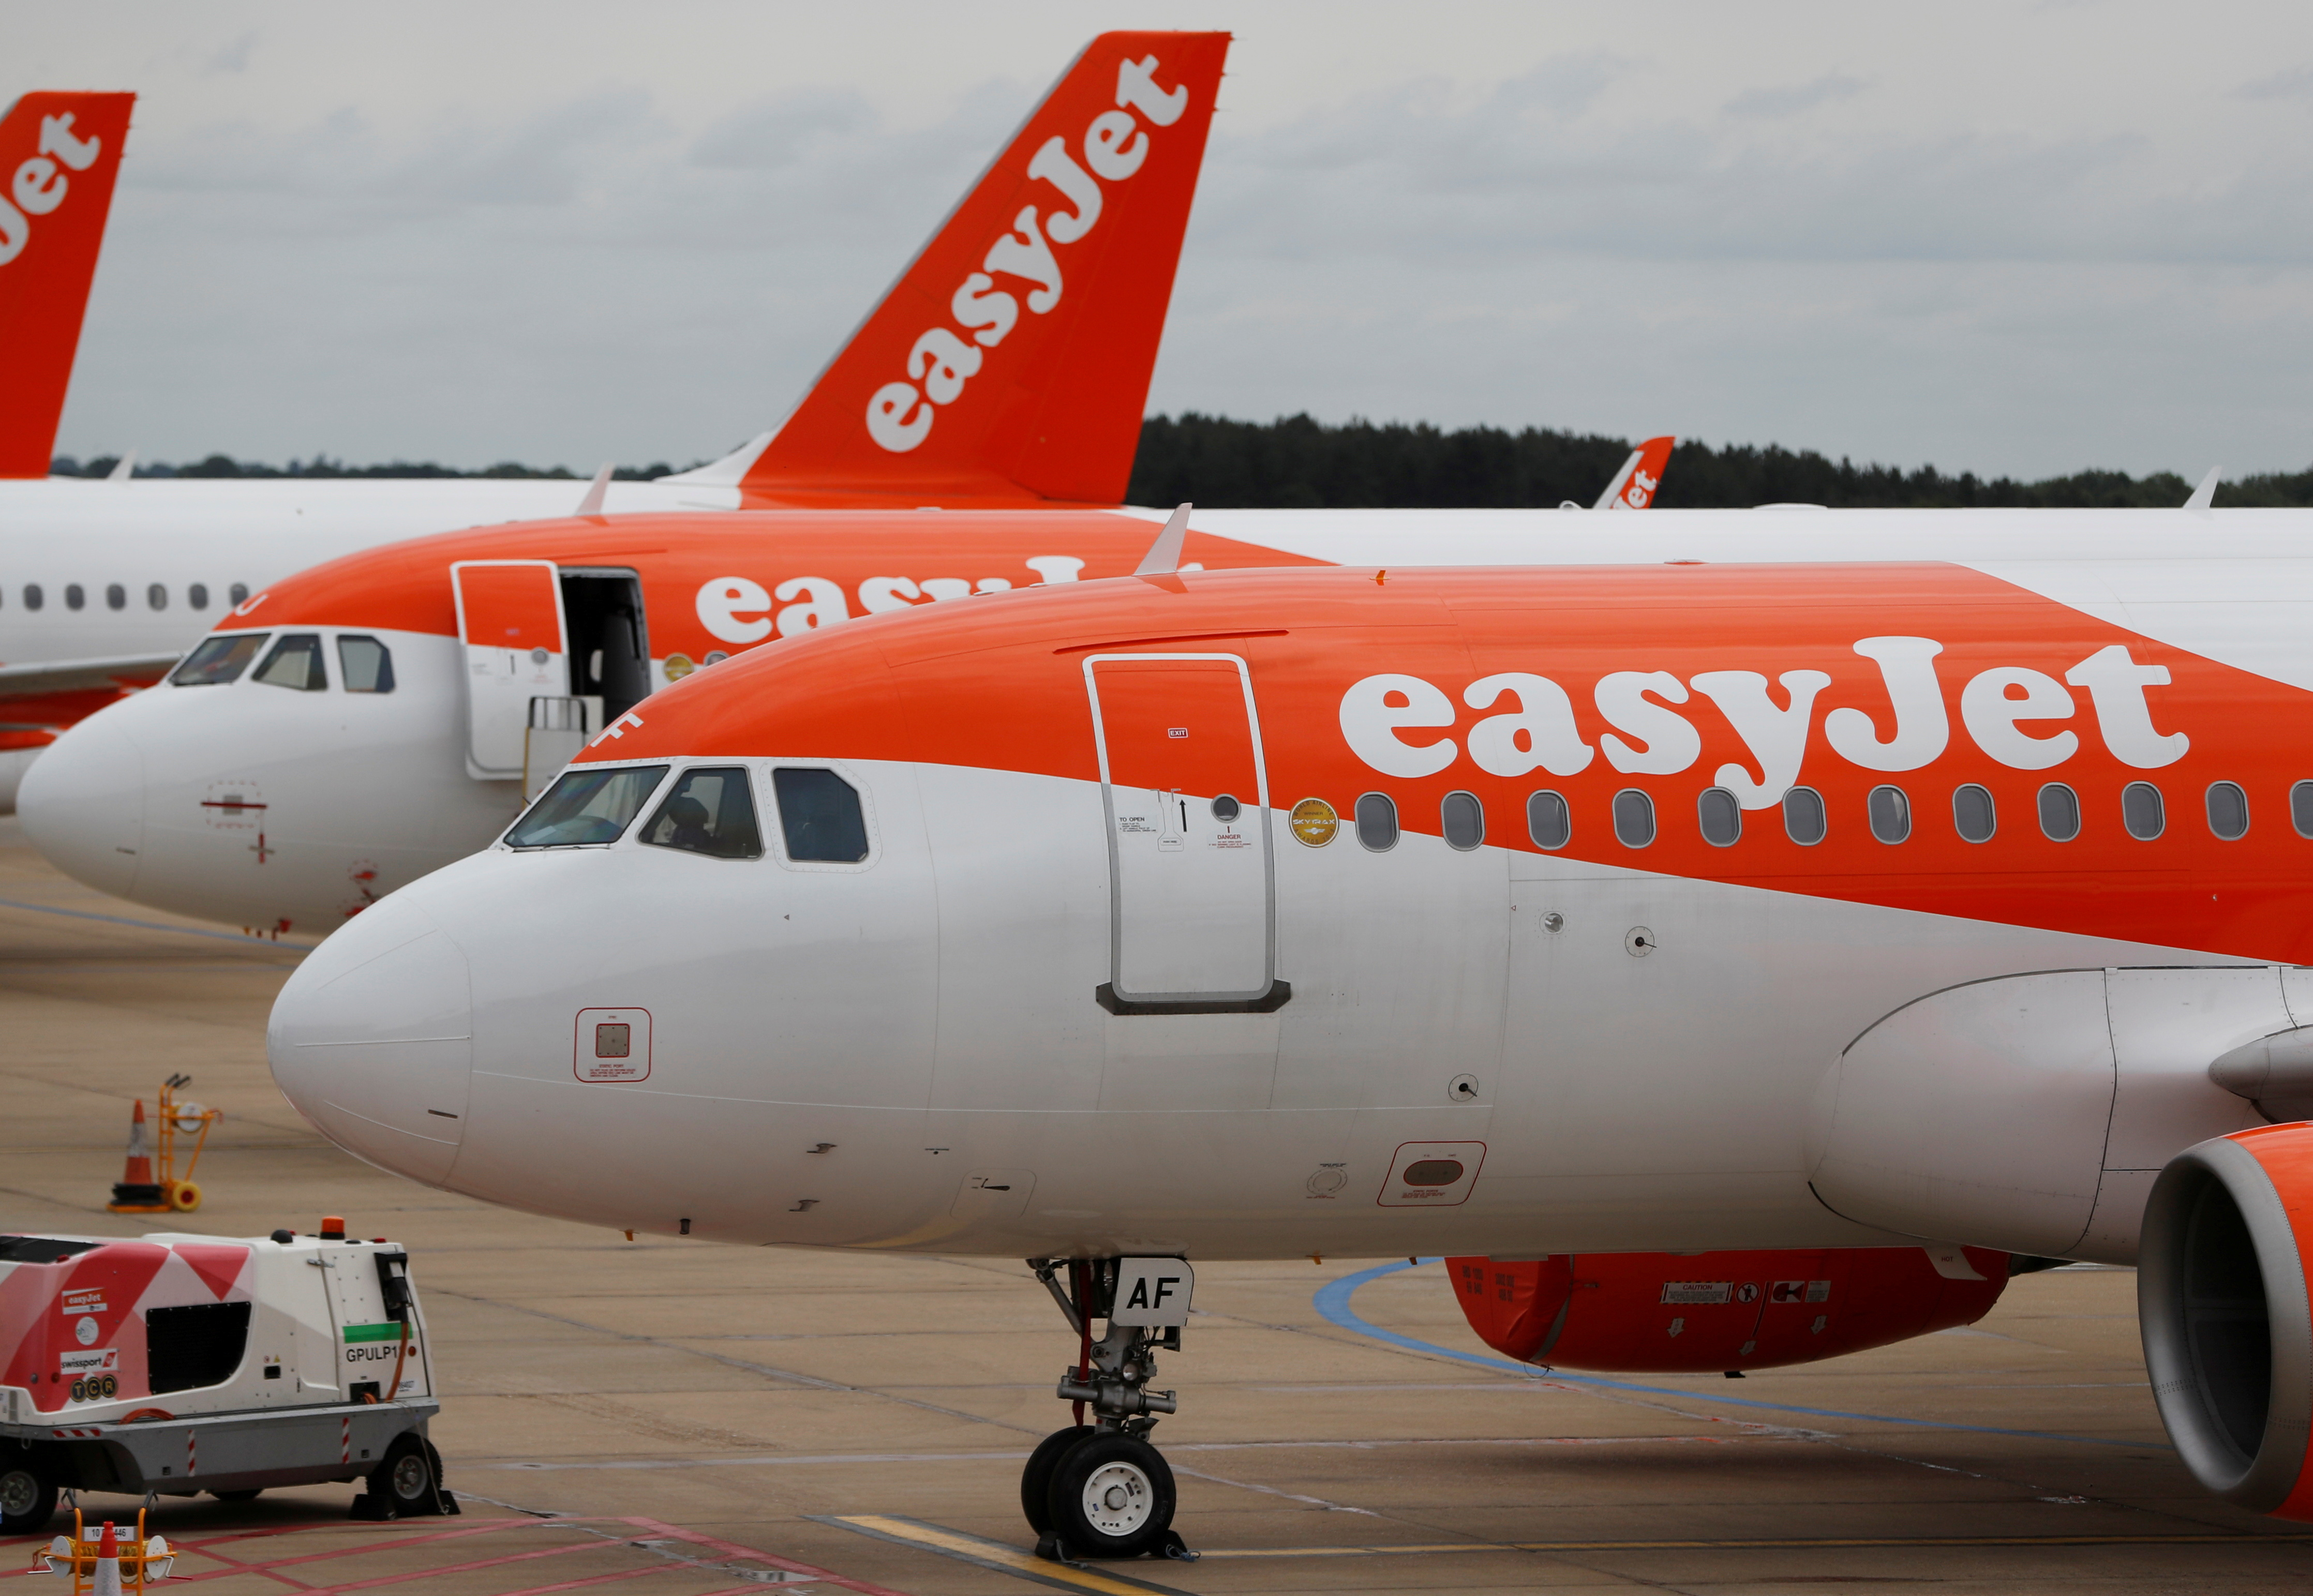 An Easyjet Airbus A319 plane is seen at Luton Airport, Luton, Britain, June 4, 2020. REUTERS/Paul Childs/File Photo